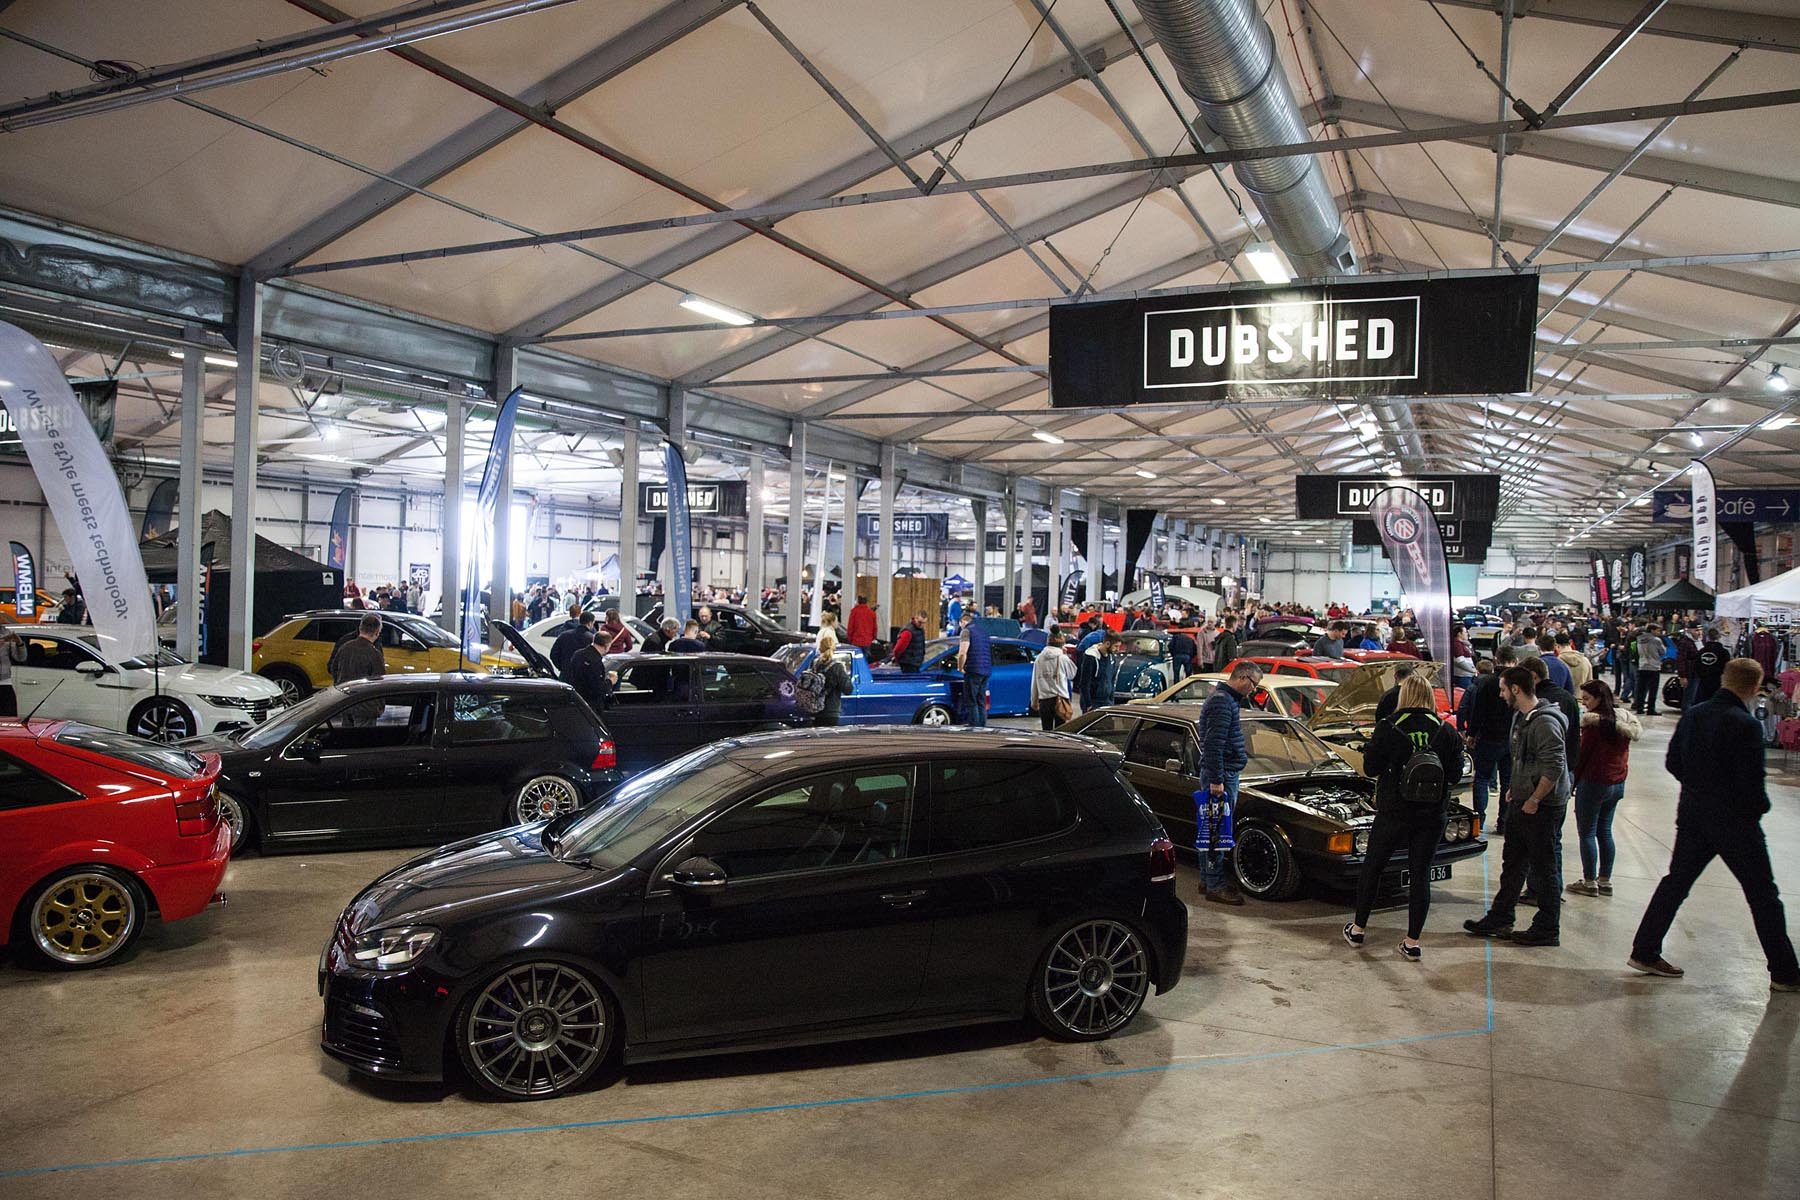 THOUSANDS DESCEND ON ANNUAL DUBSHED CAR SHOW Used Cars NI Blog - Car shows near me now